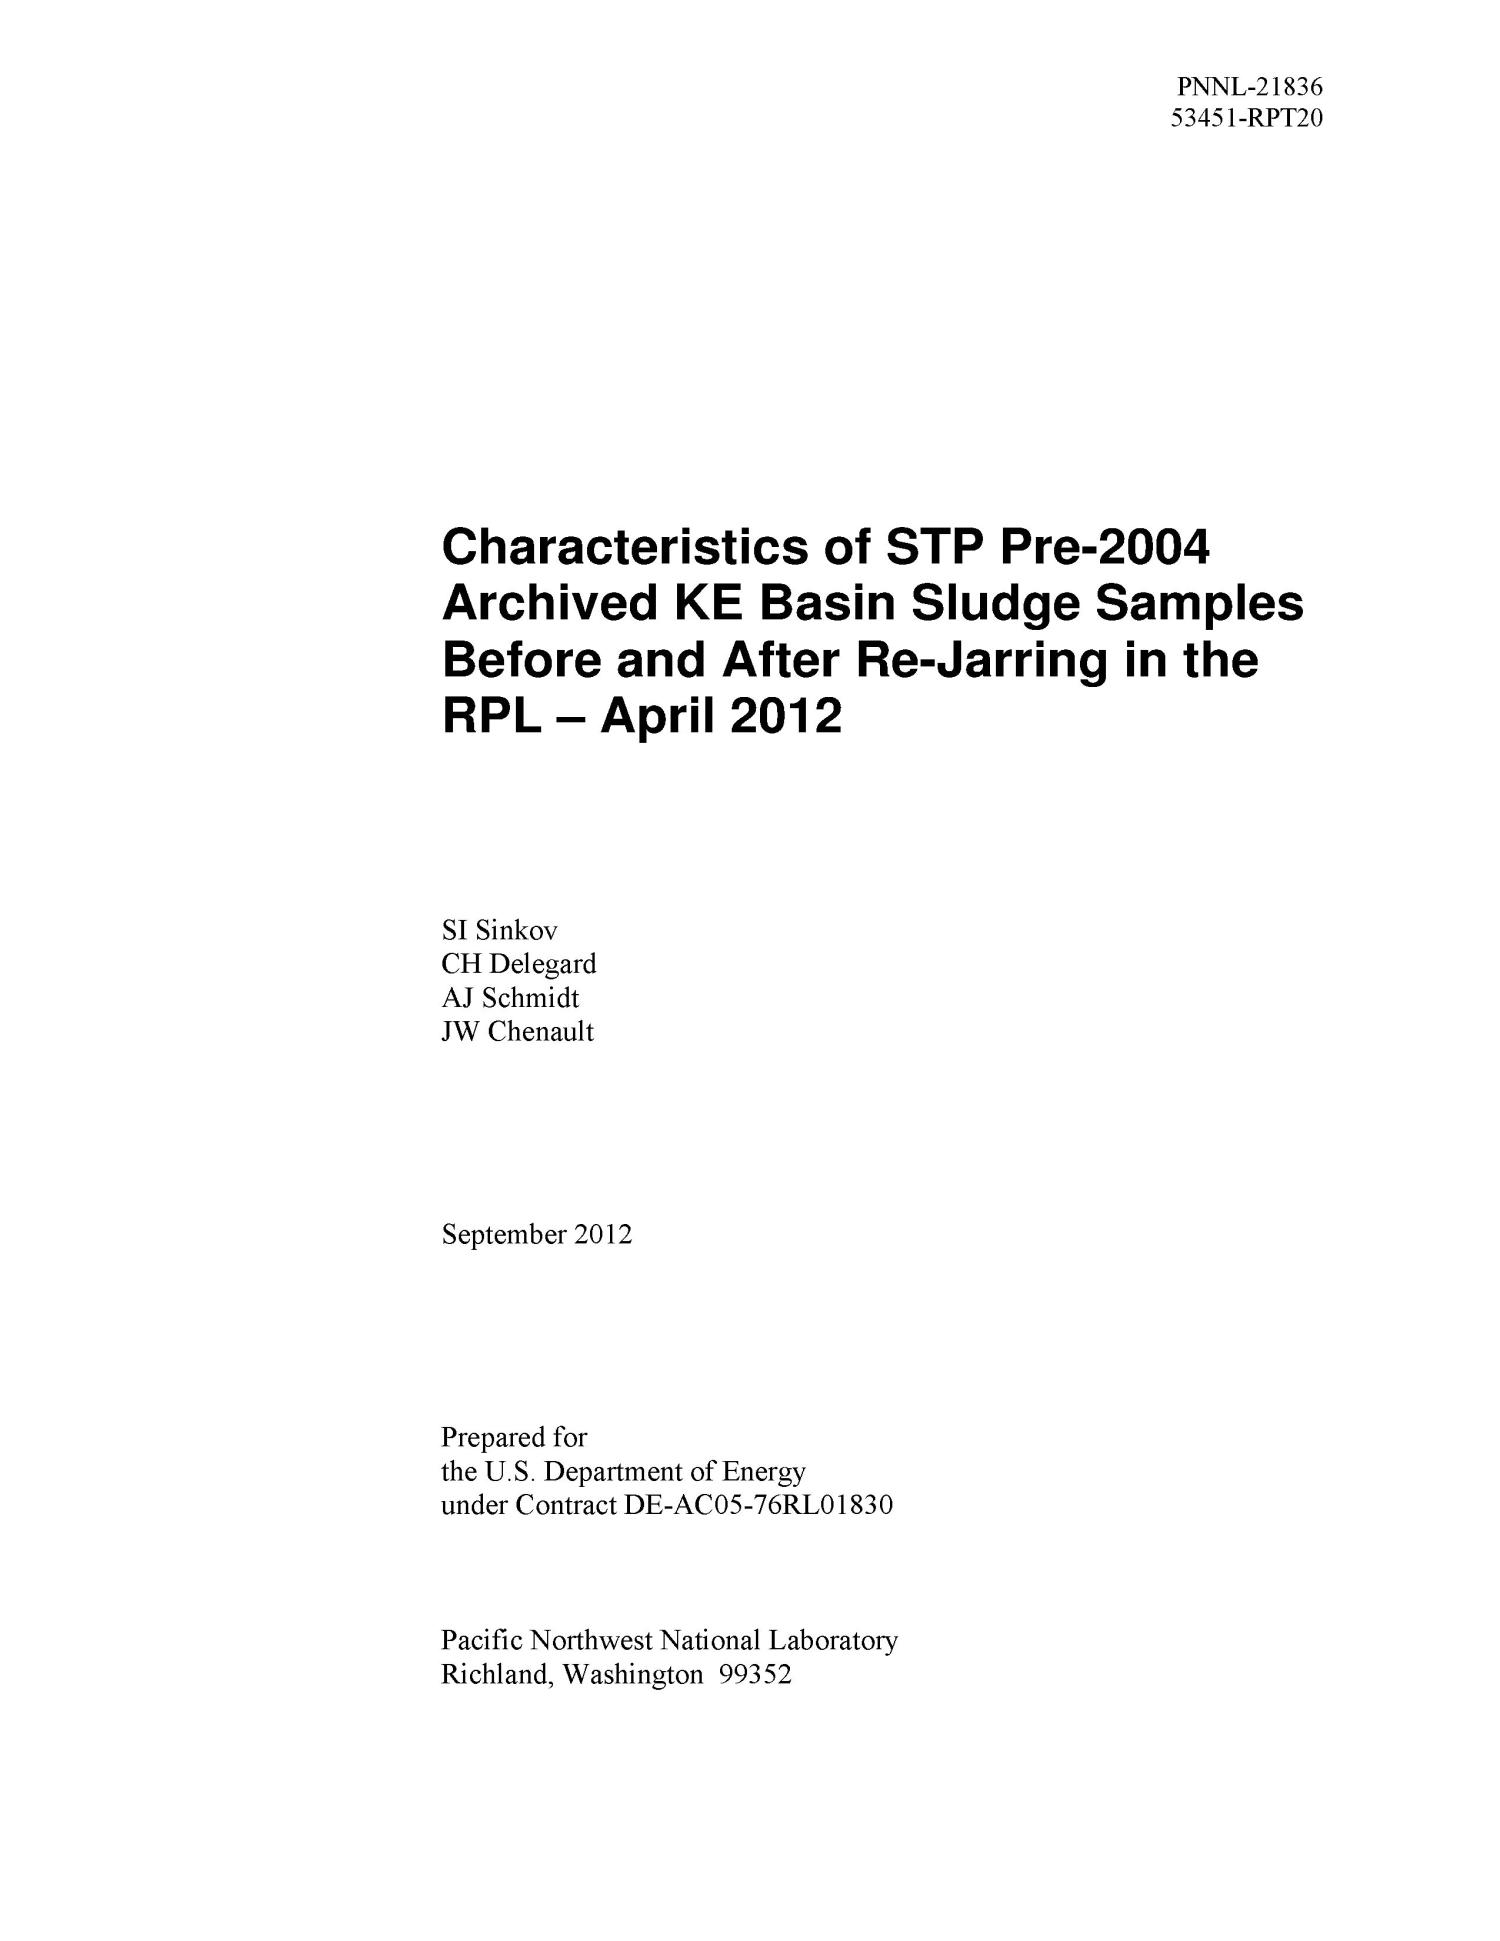 Characteristics of STP Pre-2004 Archived KE Basin Sludge Samples Before and After Re-Jarring in the RPL - April 2012                                                                                                      [Sequence #]: 3 of 52